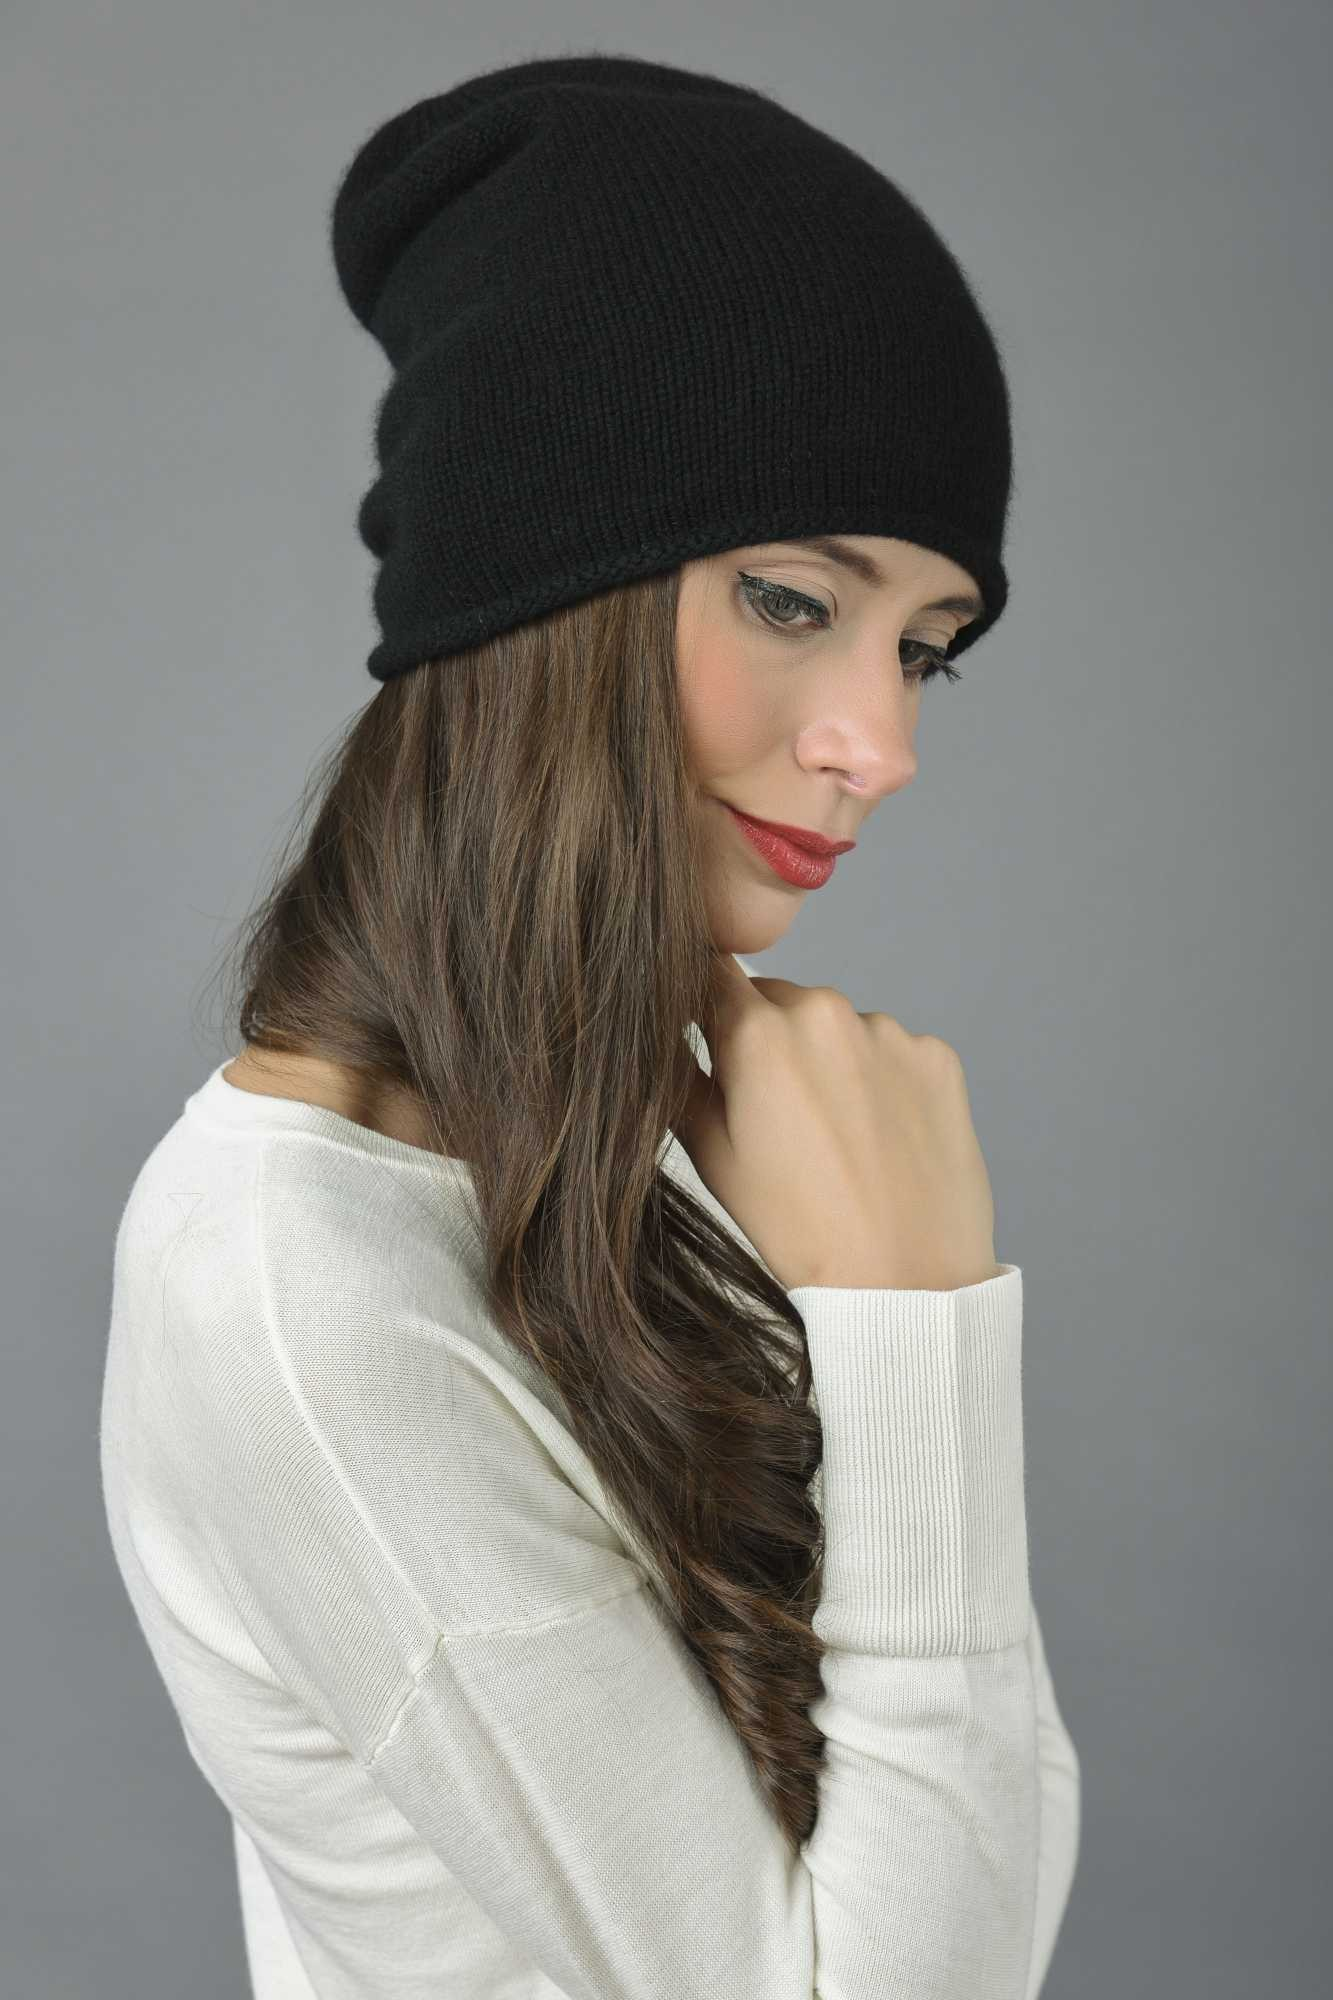 Pure Cashmere Plain Knitted Slouchy Beanie Hat in Black  a30c8908dc9